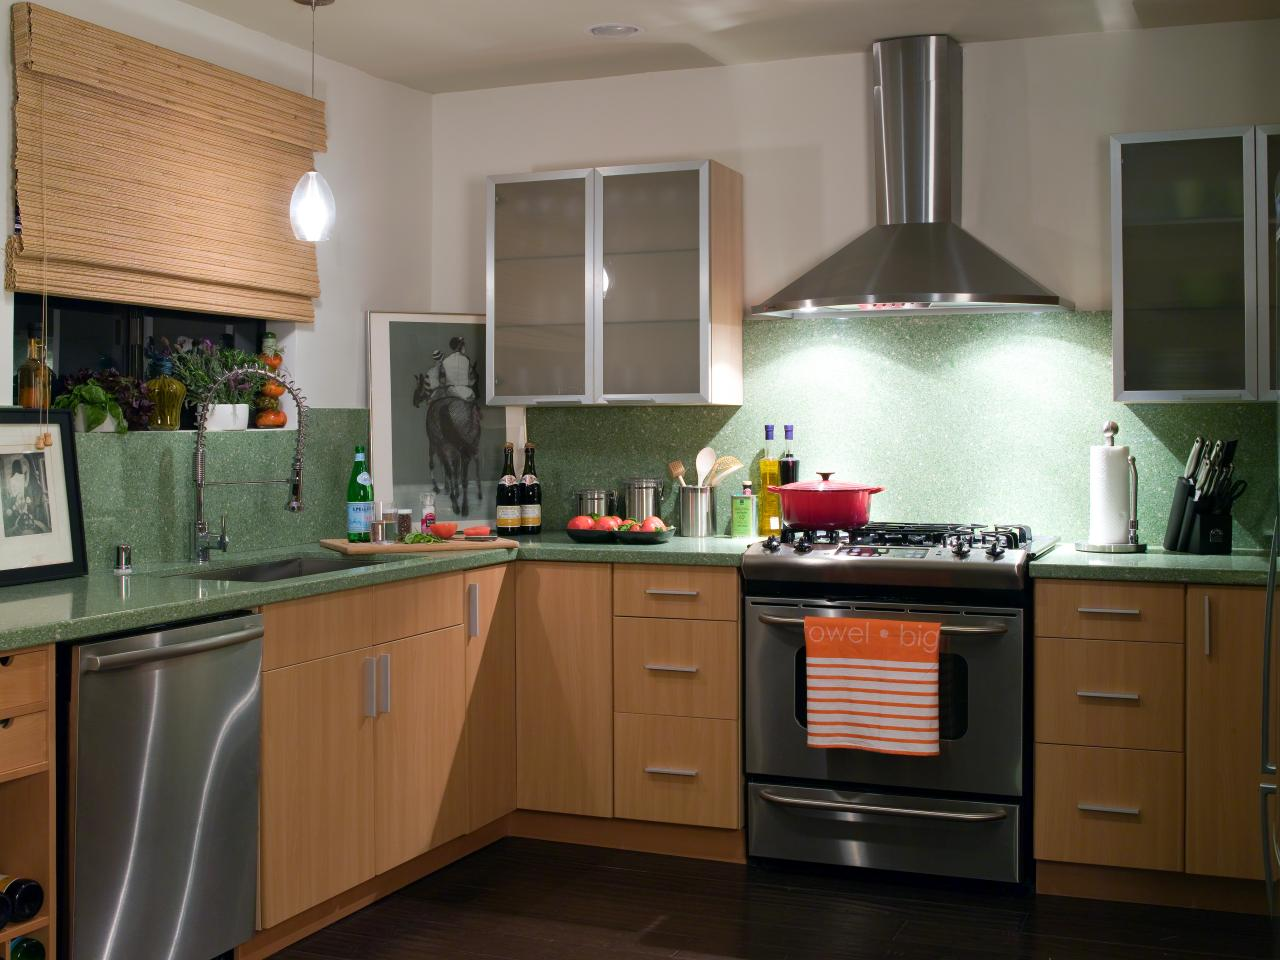 bamboo kitchen cabinets: pictures, ideas & tips from hgtv | hgtv